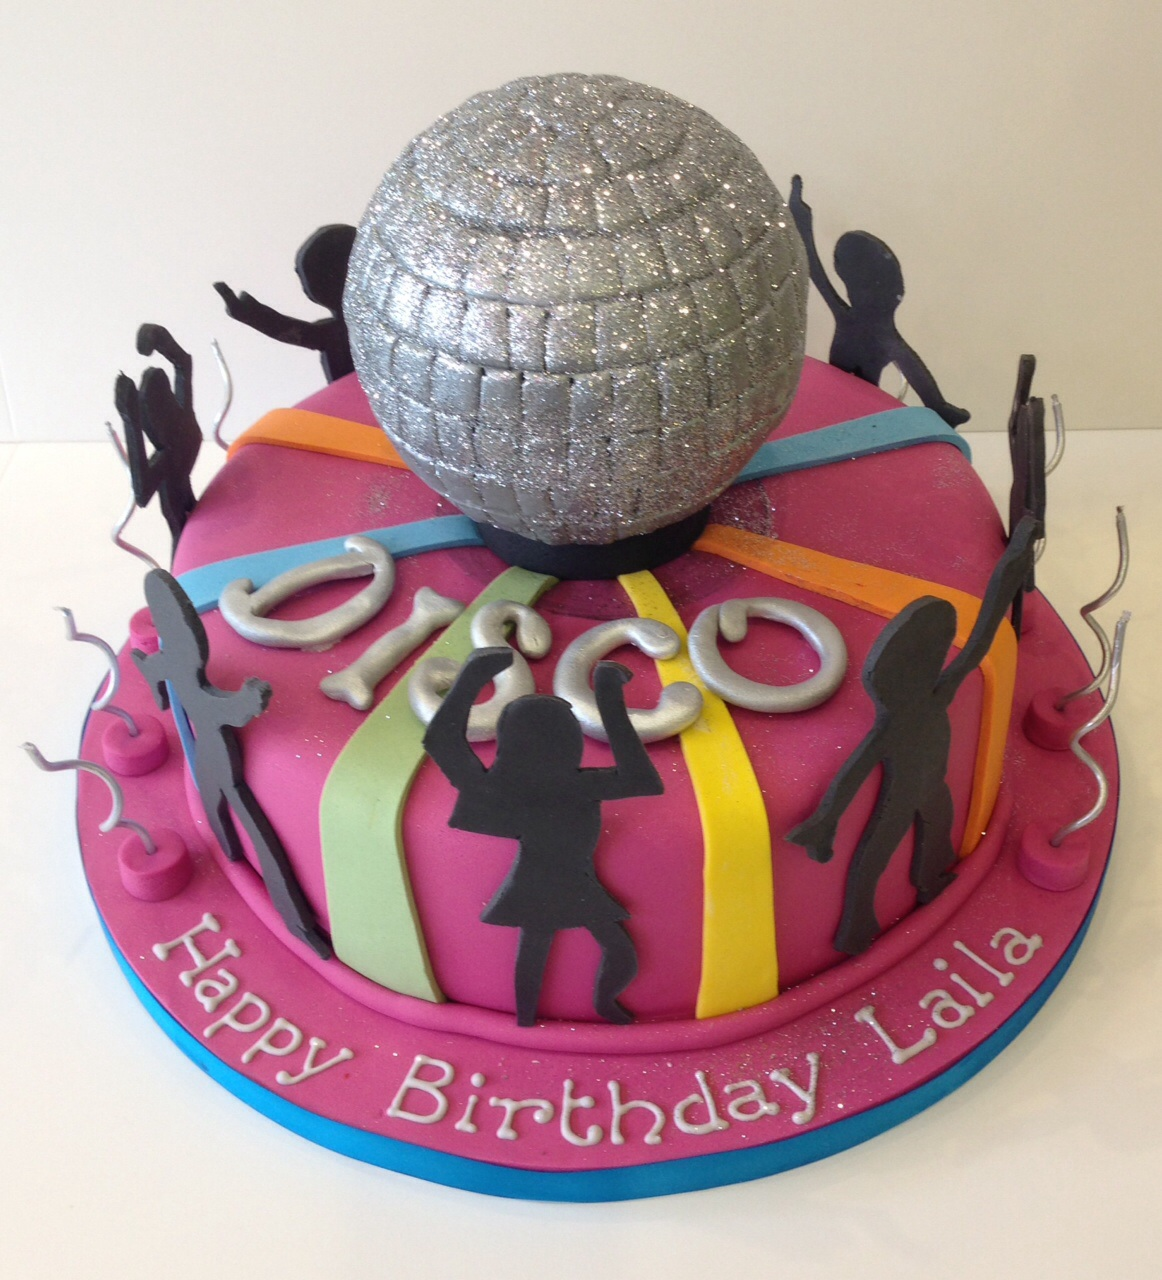 Disco Party Cake Images : Disco birthday cakes - Cakes by Robin